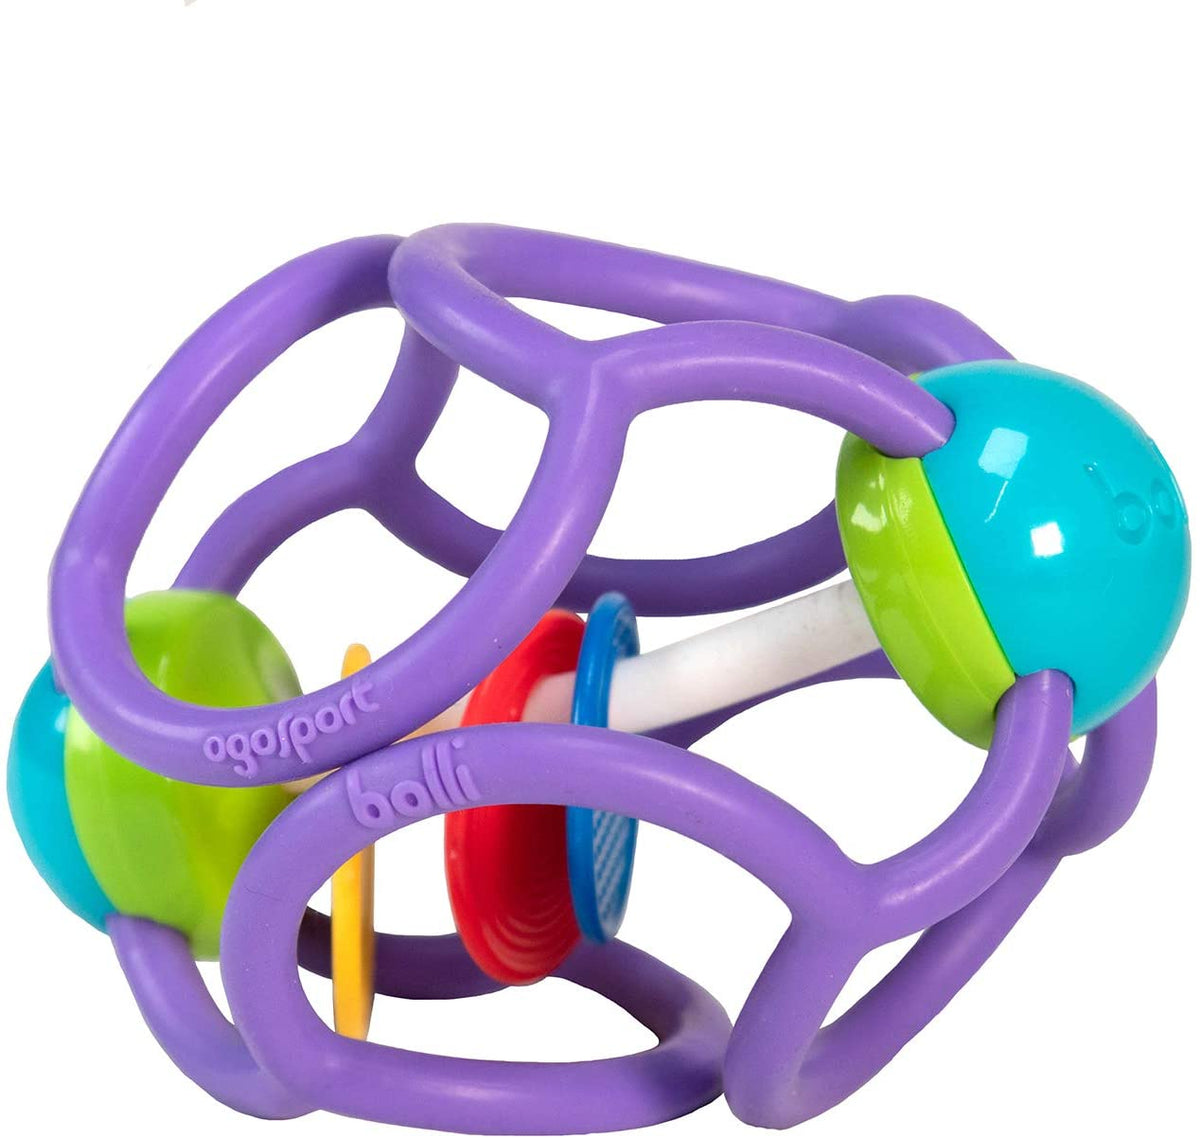 OgoBolli Squishy Rattle Ball